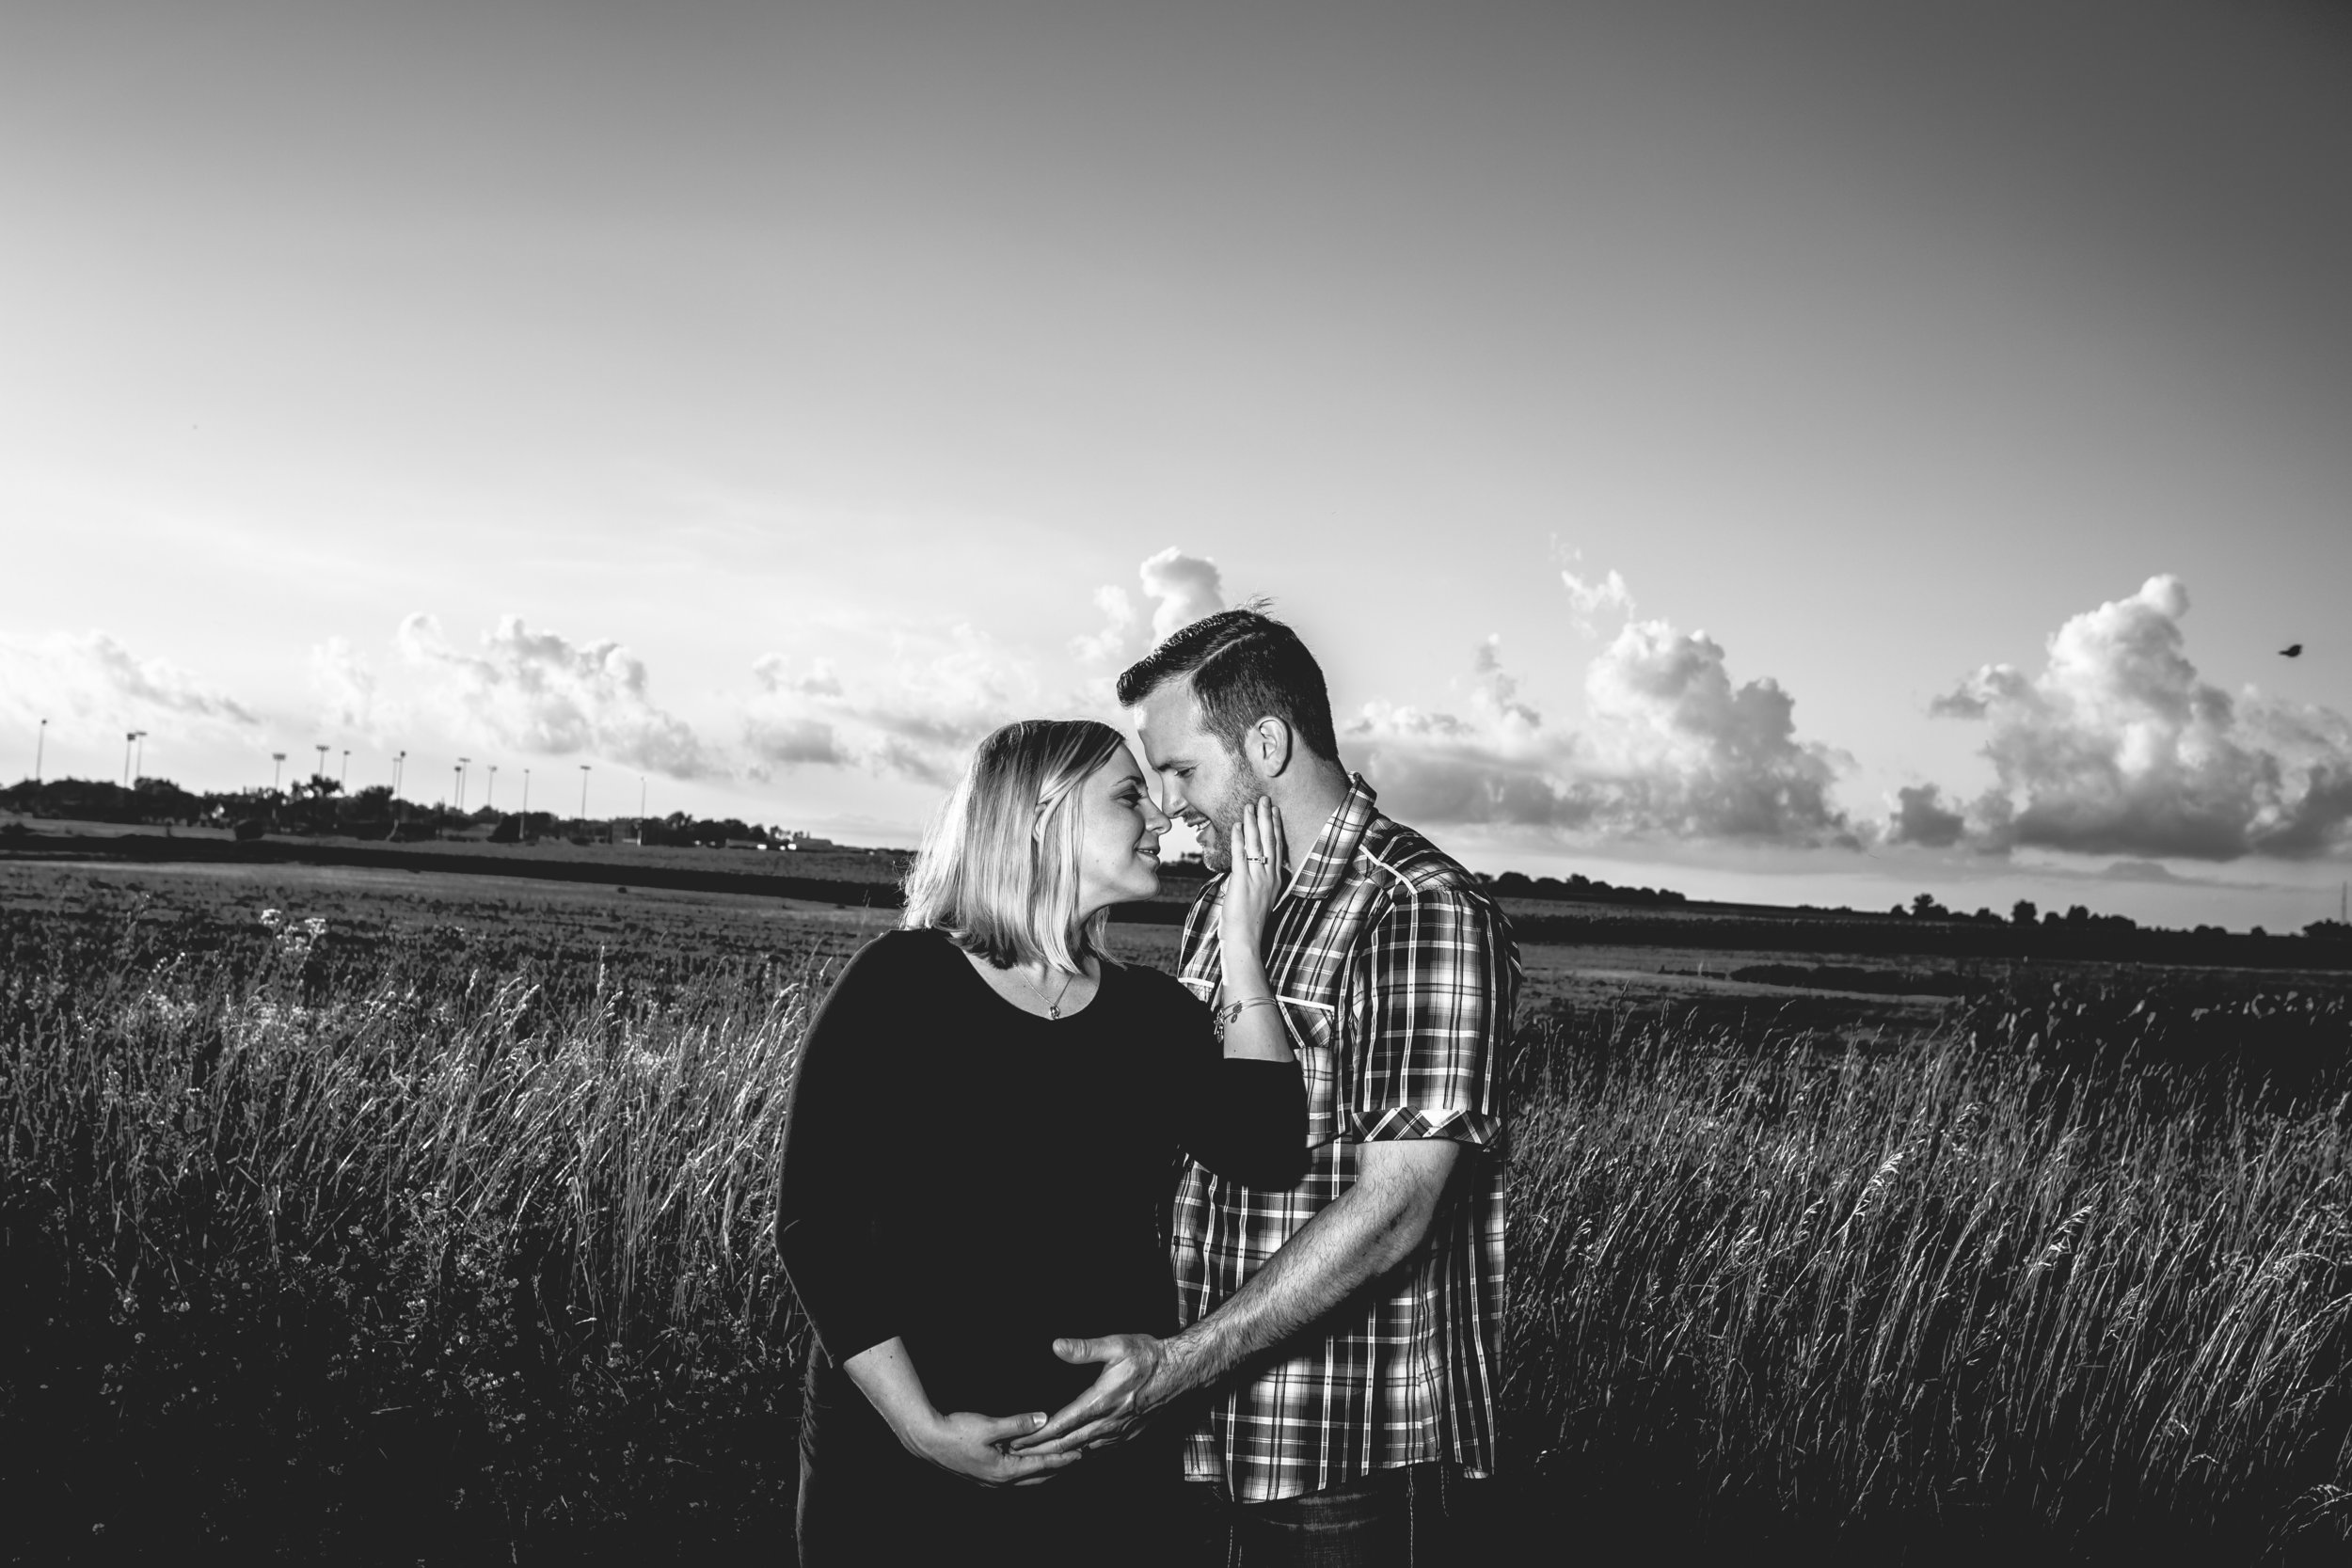 Andrea-Steve-James-Maternity-Shoot-34.jpg